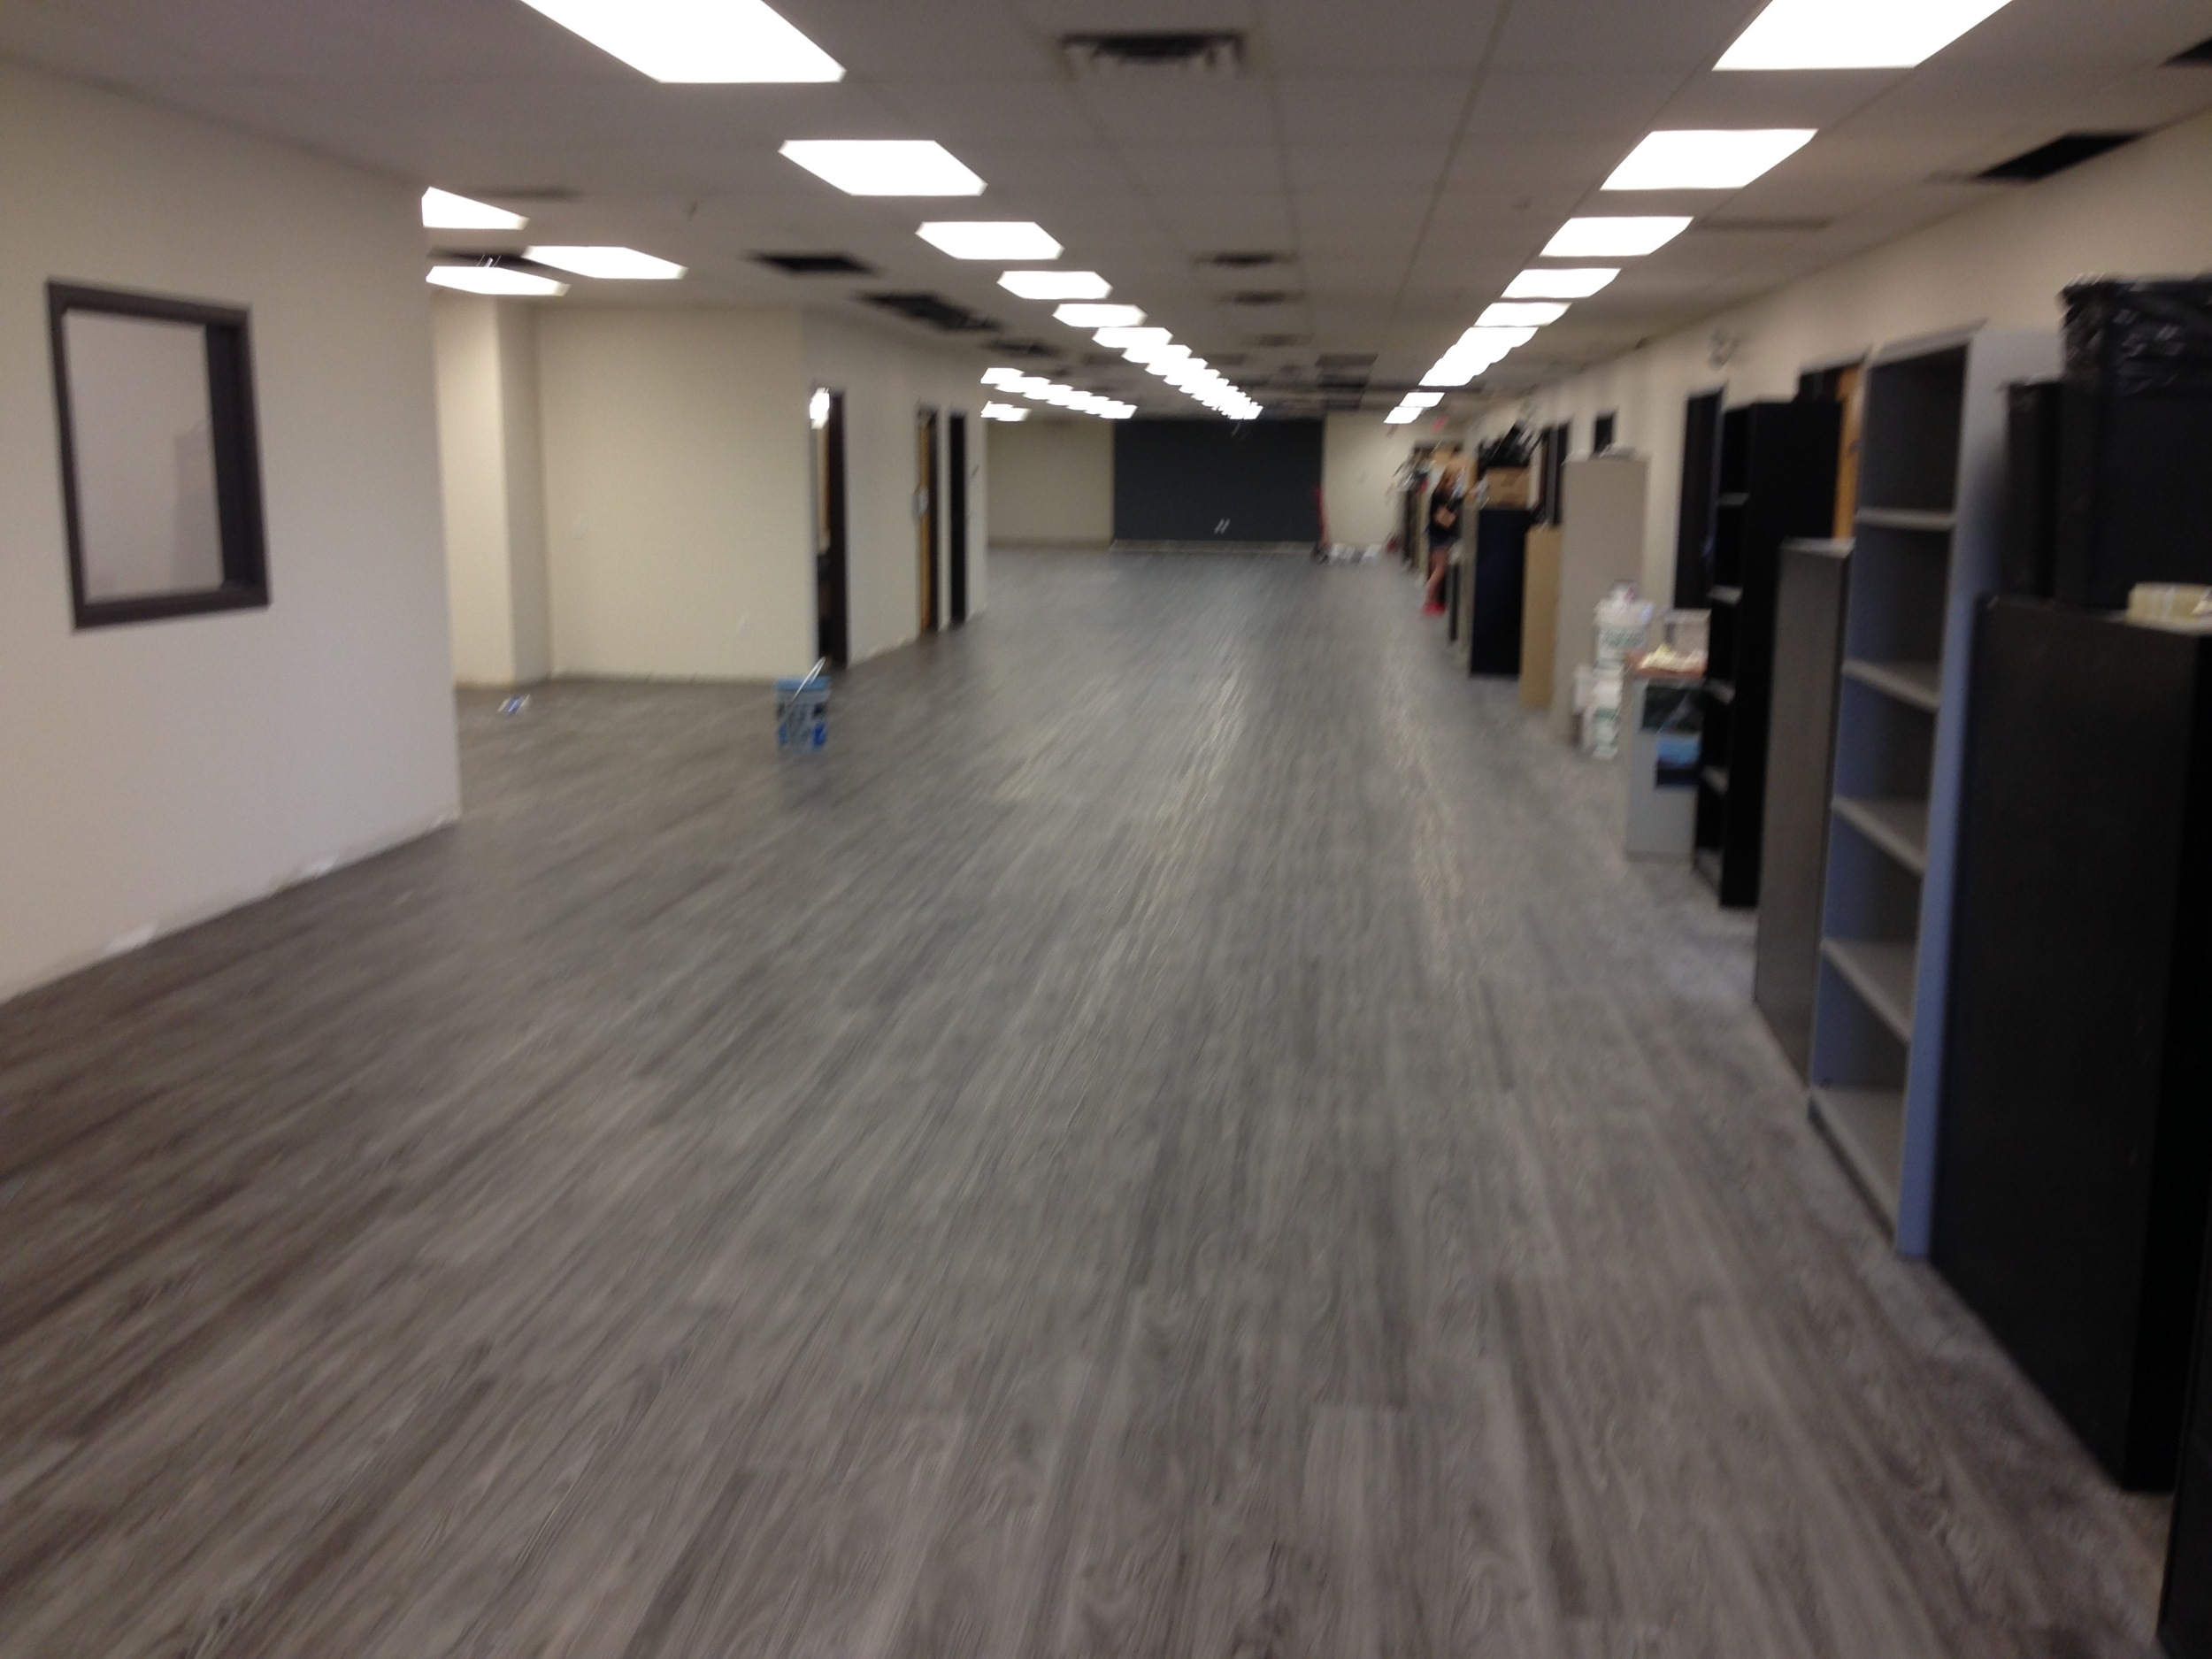 FC05  Floor Coverings - General Contractors Commercial Renovations in Edmonton, Office and Warehouse Project Contractors